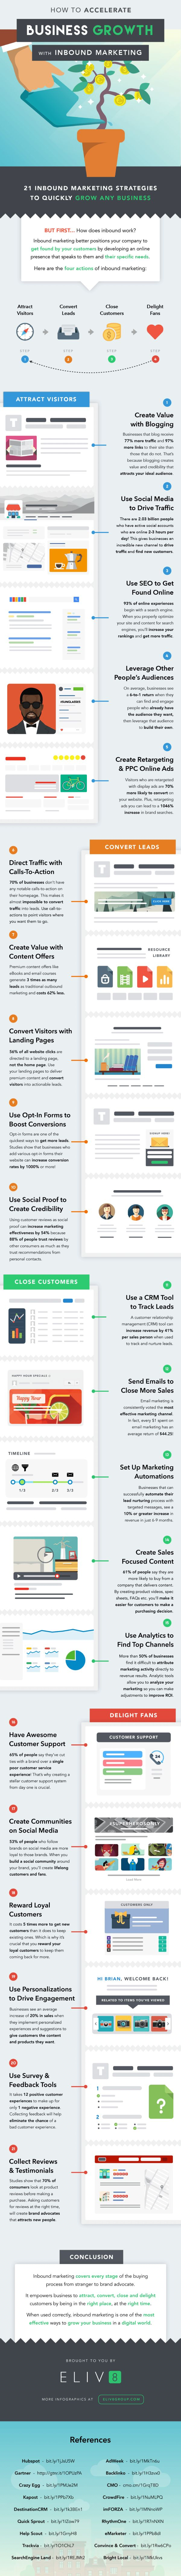 21 Quick Tips for an Effective Inbound Marketing Strategy [Infographic]